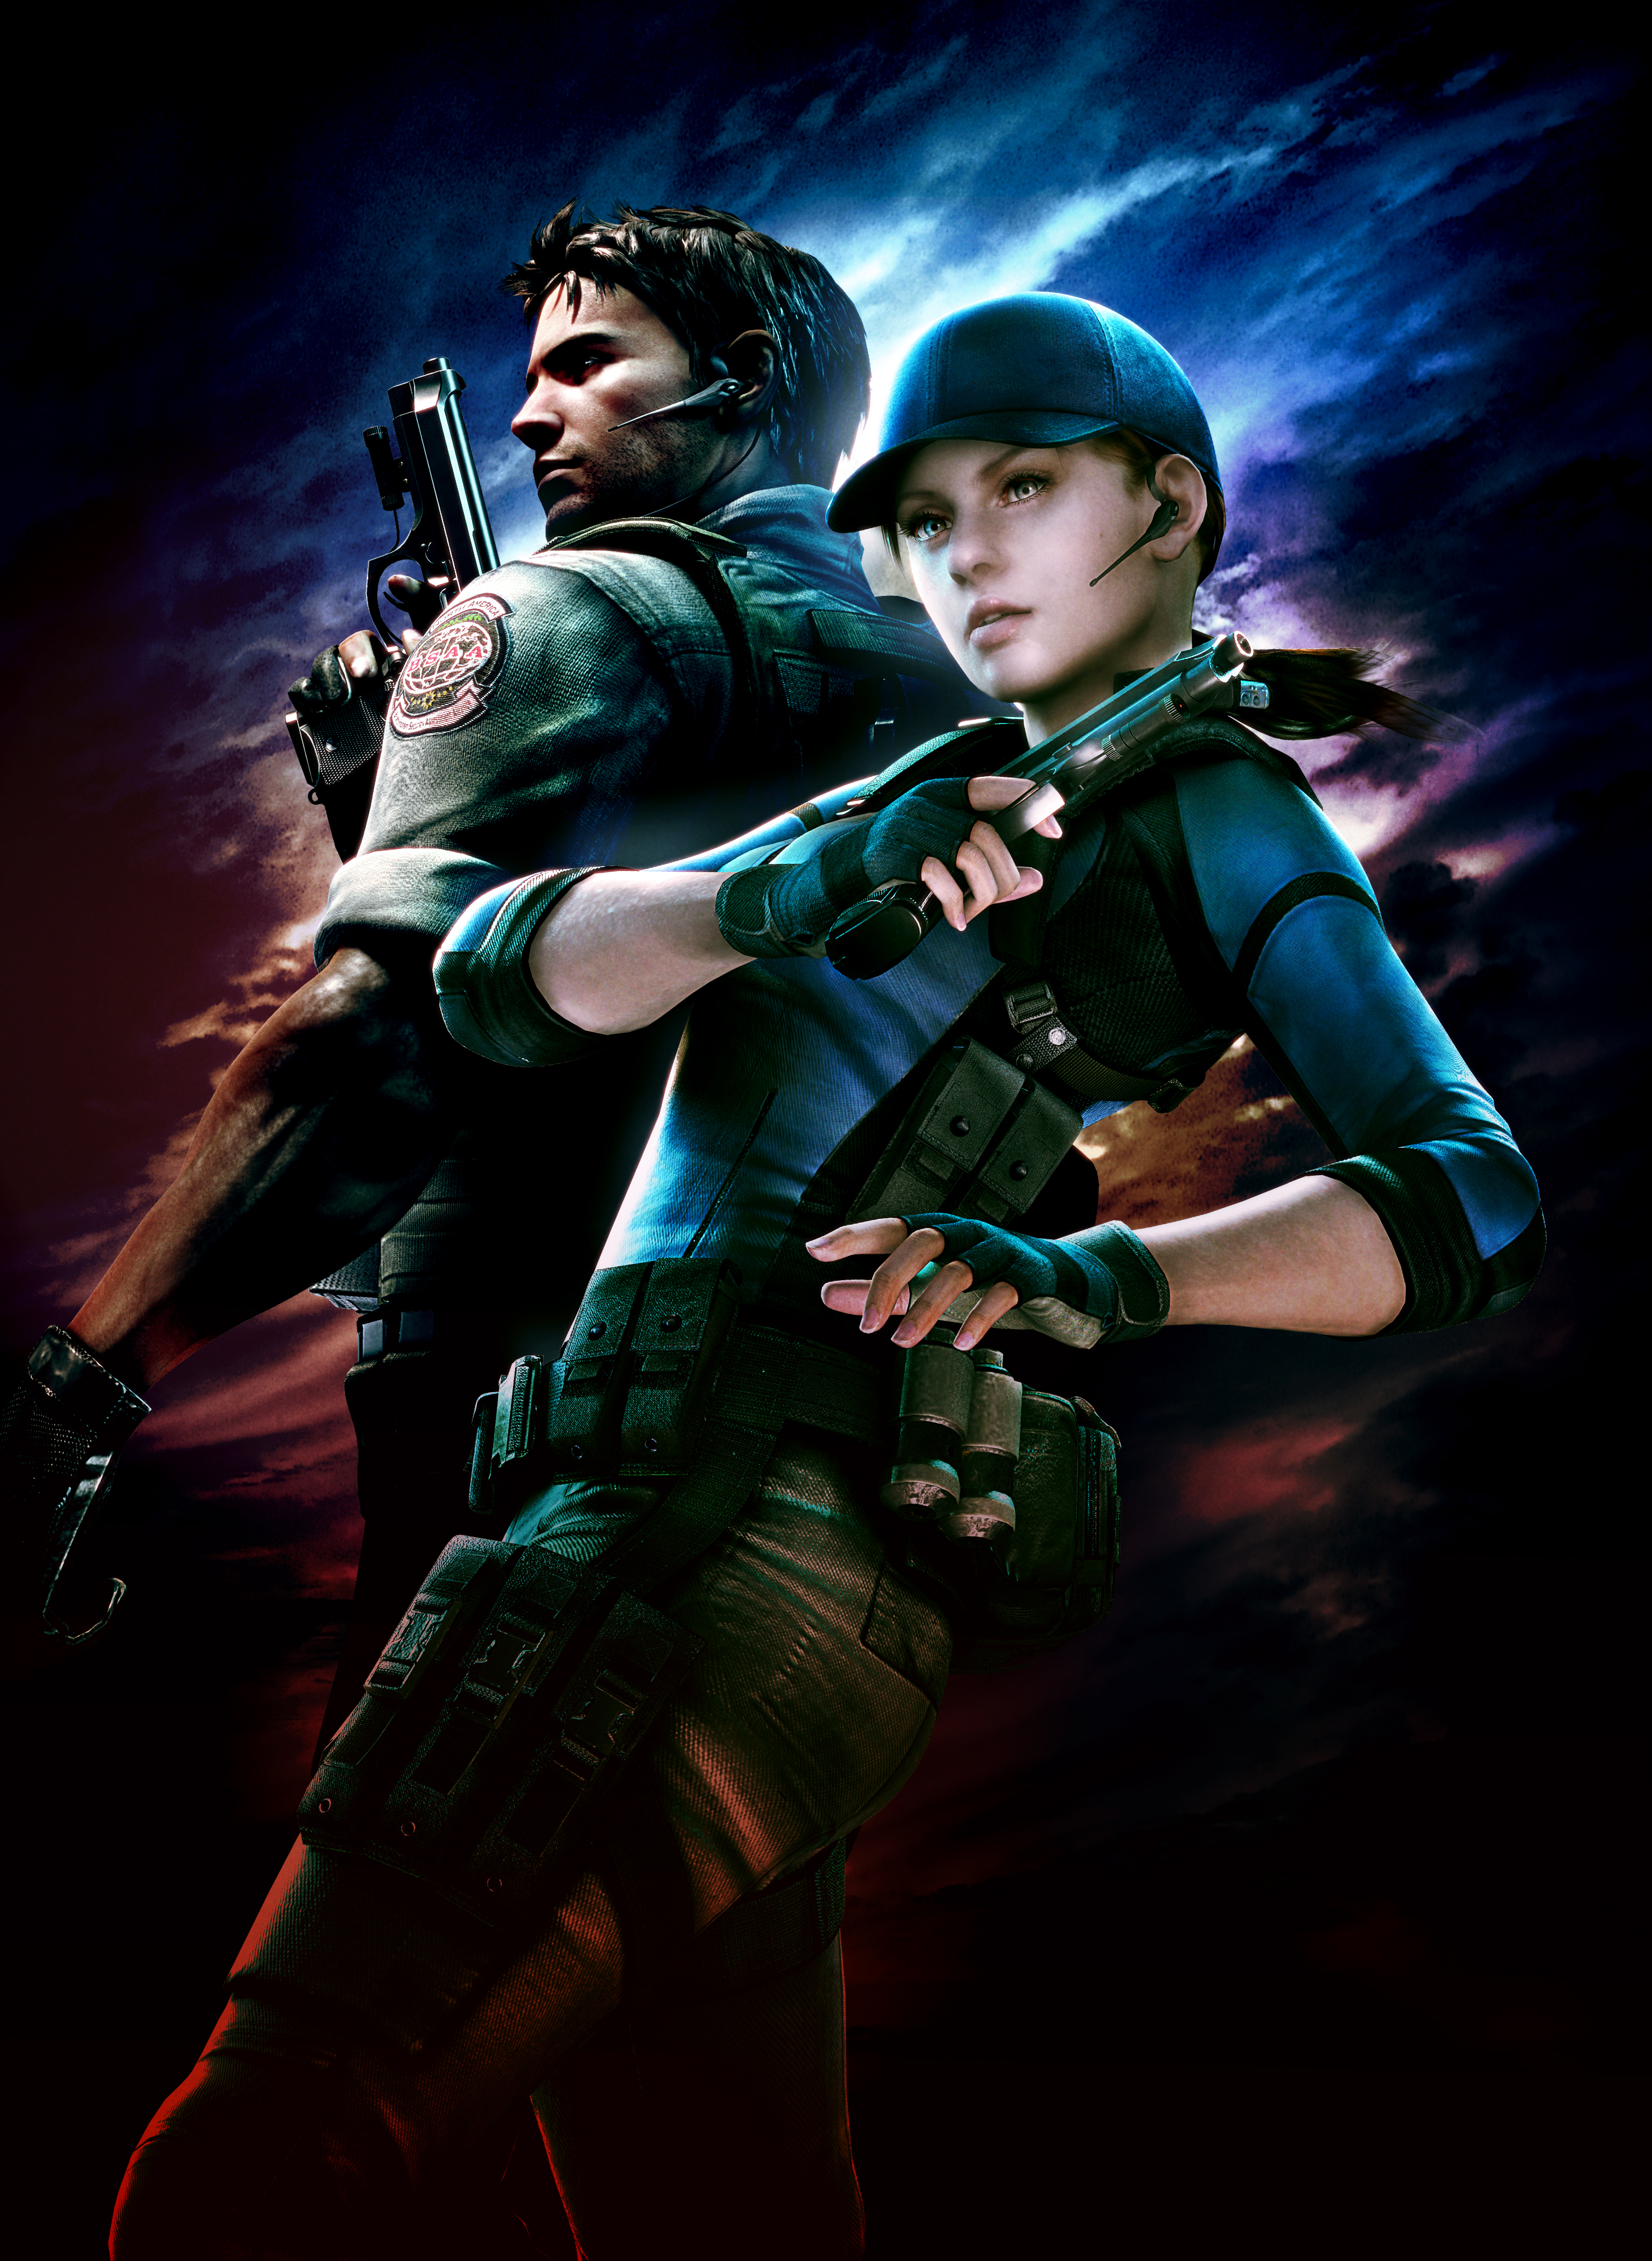 Resident Evil 5 Wallpaper And Scan Gallery Minitokyo